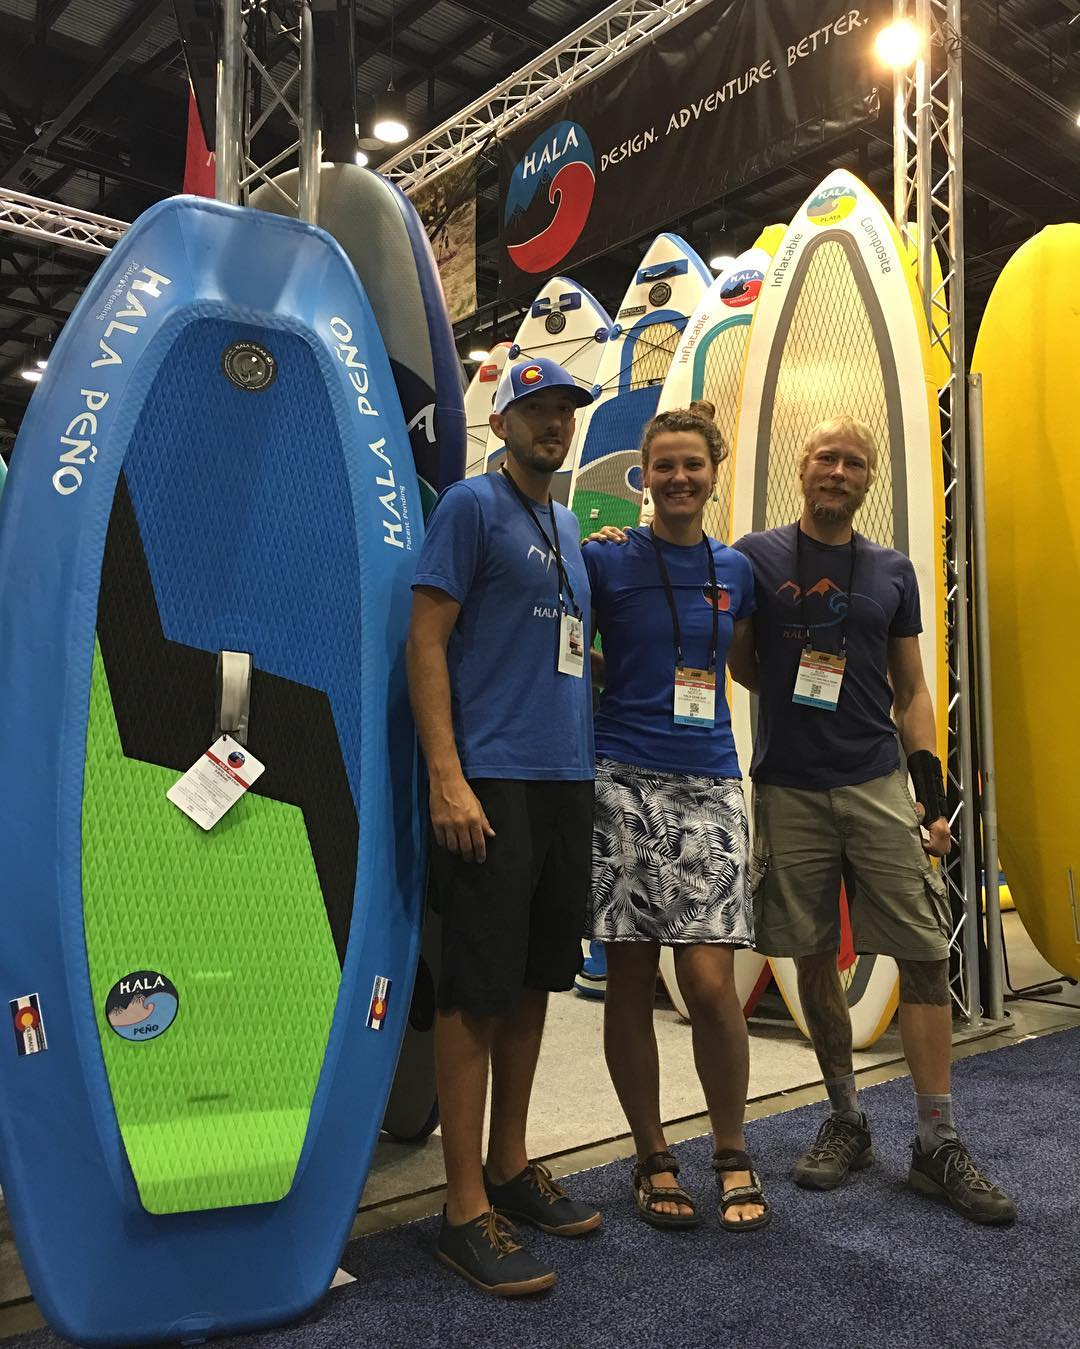 Come visit the #halagear booth at @surfexpo! Check out all the new boards coming out for 2017! Booth #1048  #adventuredesigned #paddlewithfriends #isup #inflatable #standuppaddle #paddleboarding #suplifestyle #adventurers #sup #yogadesigned...